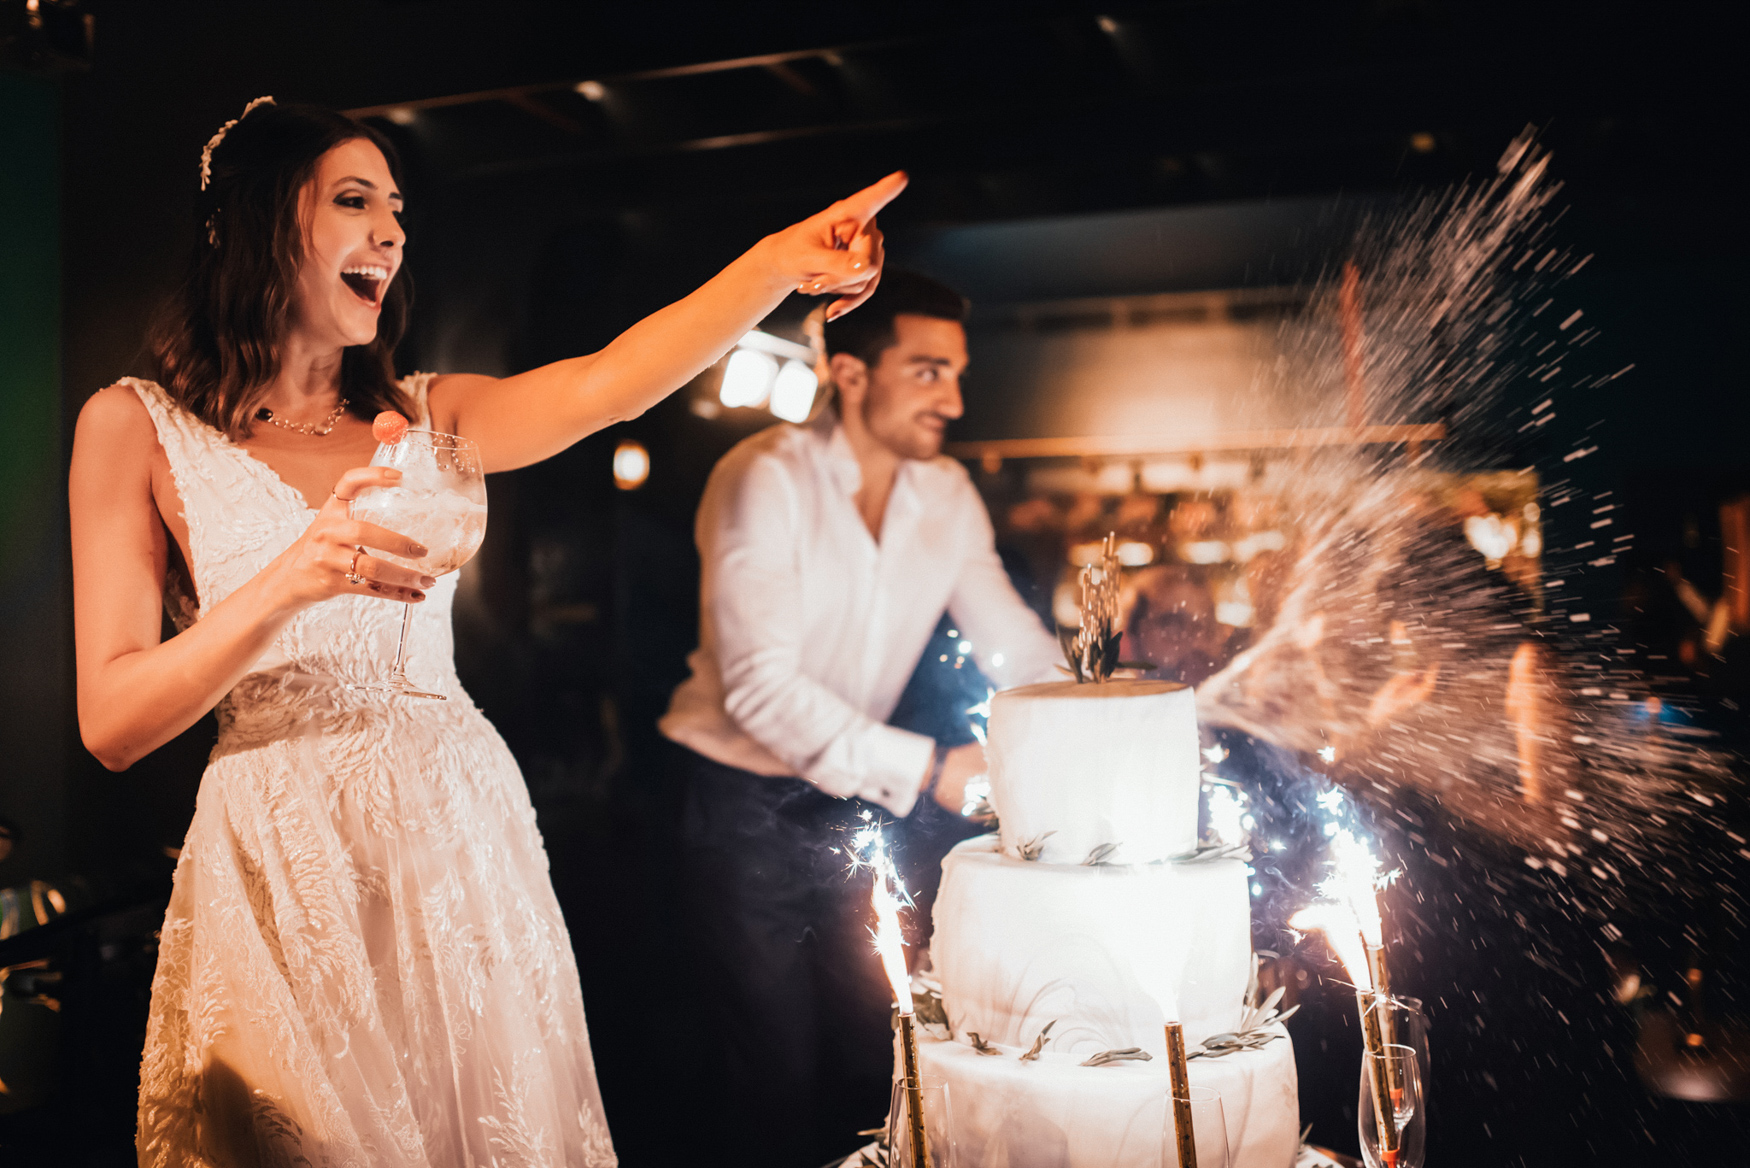 bestof2017_086 lebanon wedding photographer crazy wedding reception beirut.jpg